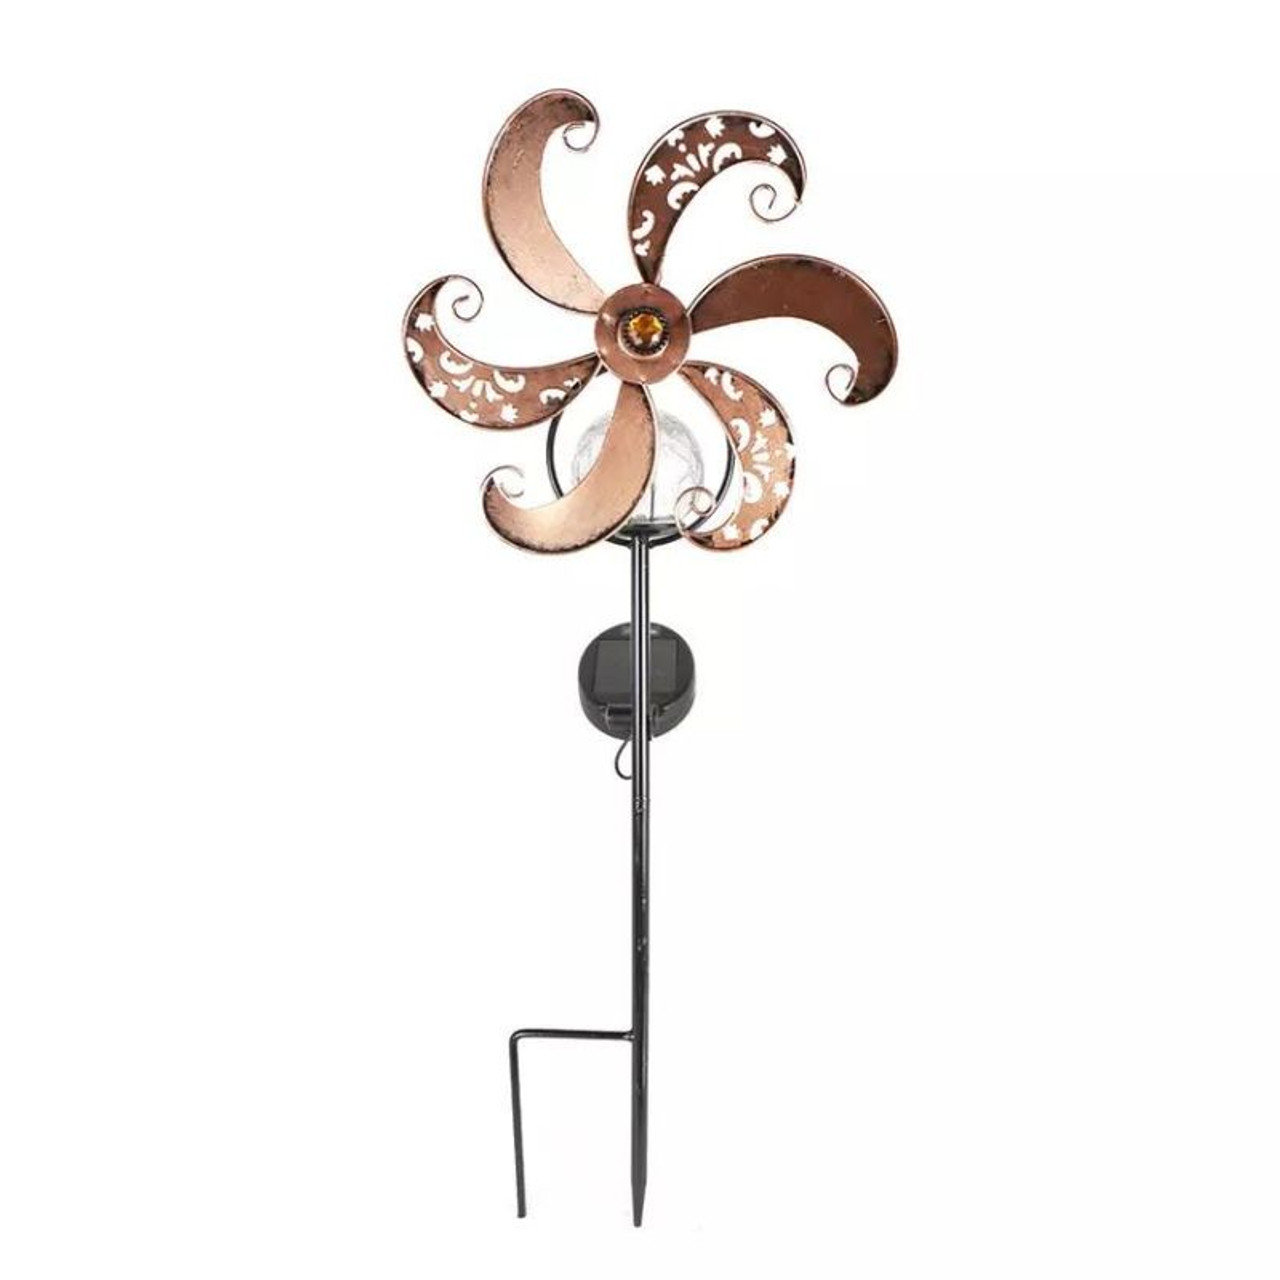 Solar LED Metal Wind Spinner Whimsy Whirl or Sun Spin - 1, 2 or 3 Pack